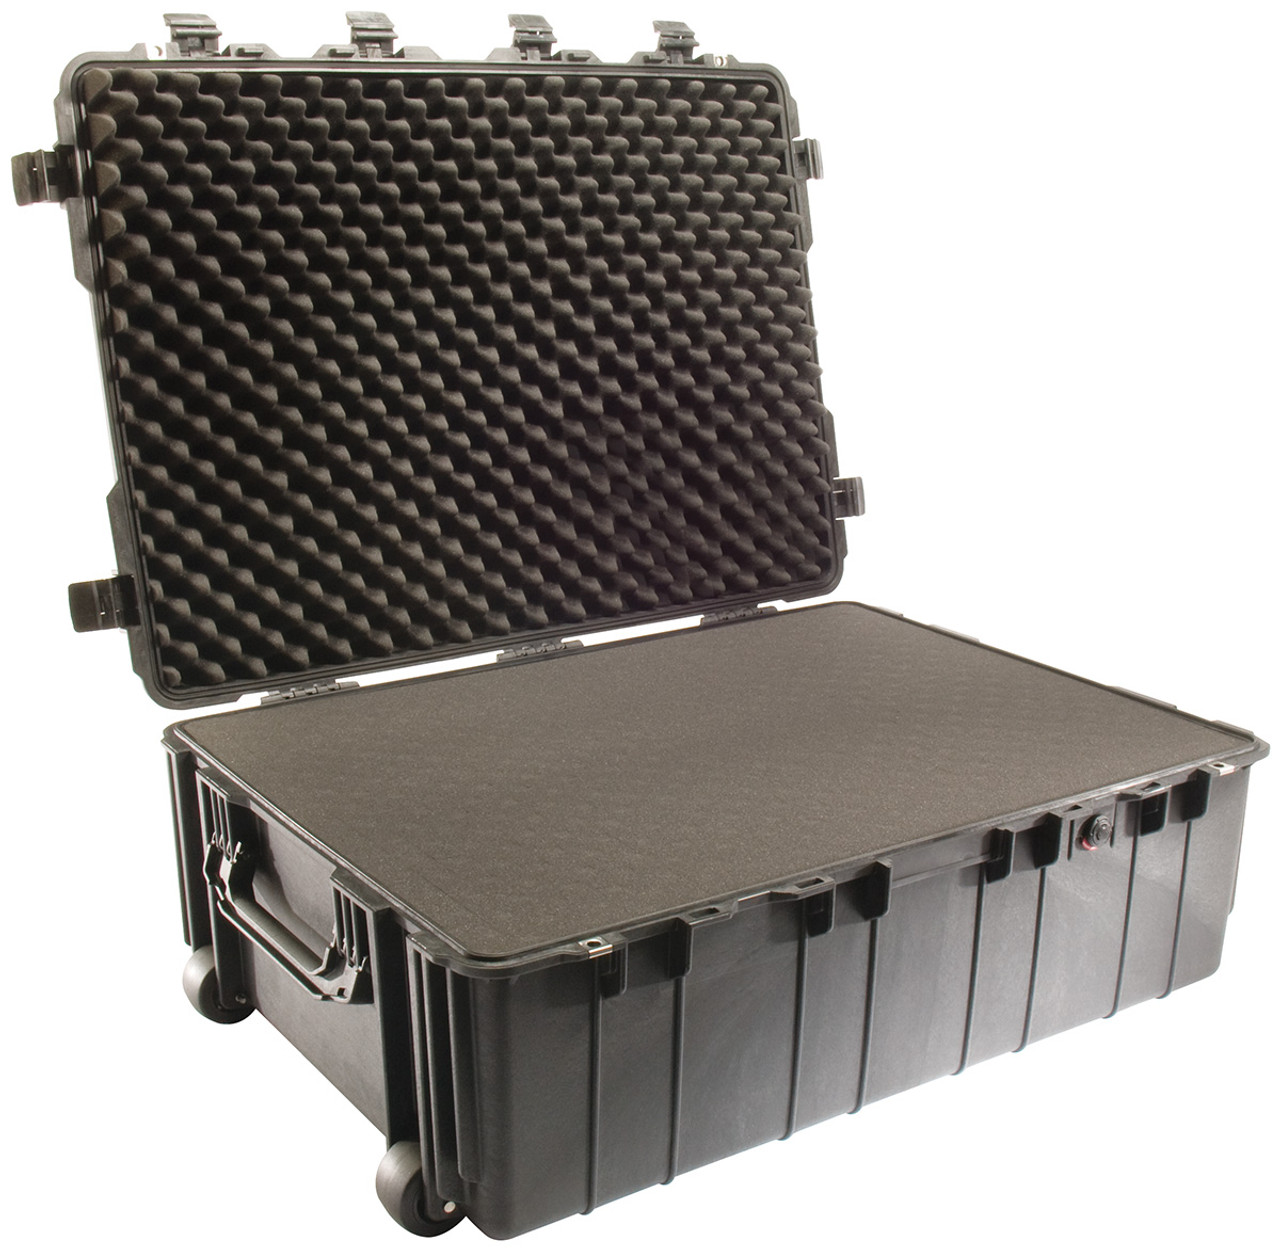 Pelican 1730 Protector - Large Transport Case - Watertight, Crushproof, and Dustproof, With Optional Foam Insert, 38x28x15, 43 lbs (w-out foam, 35 lbs)